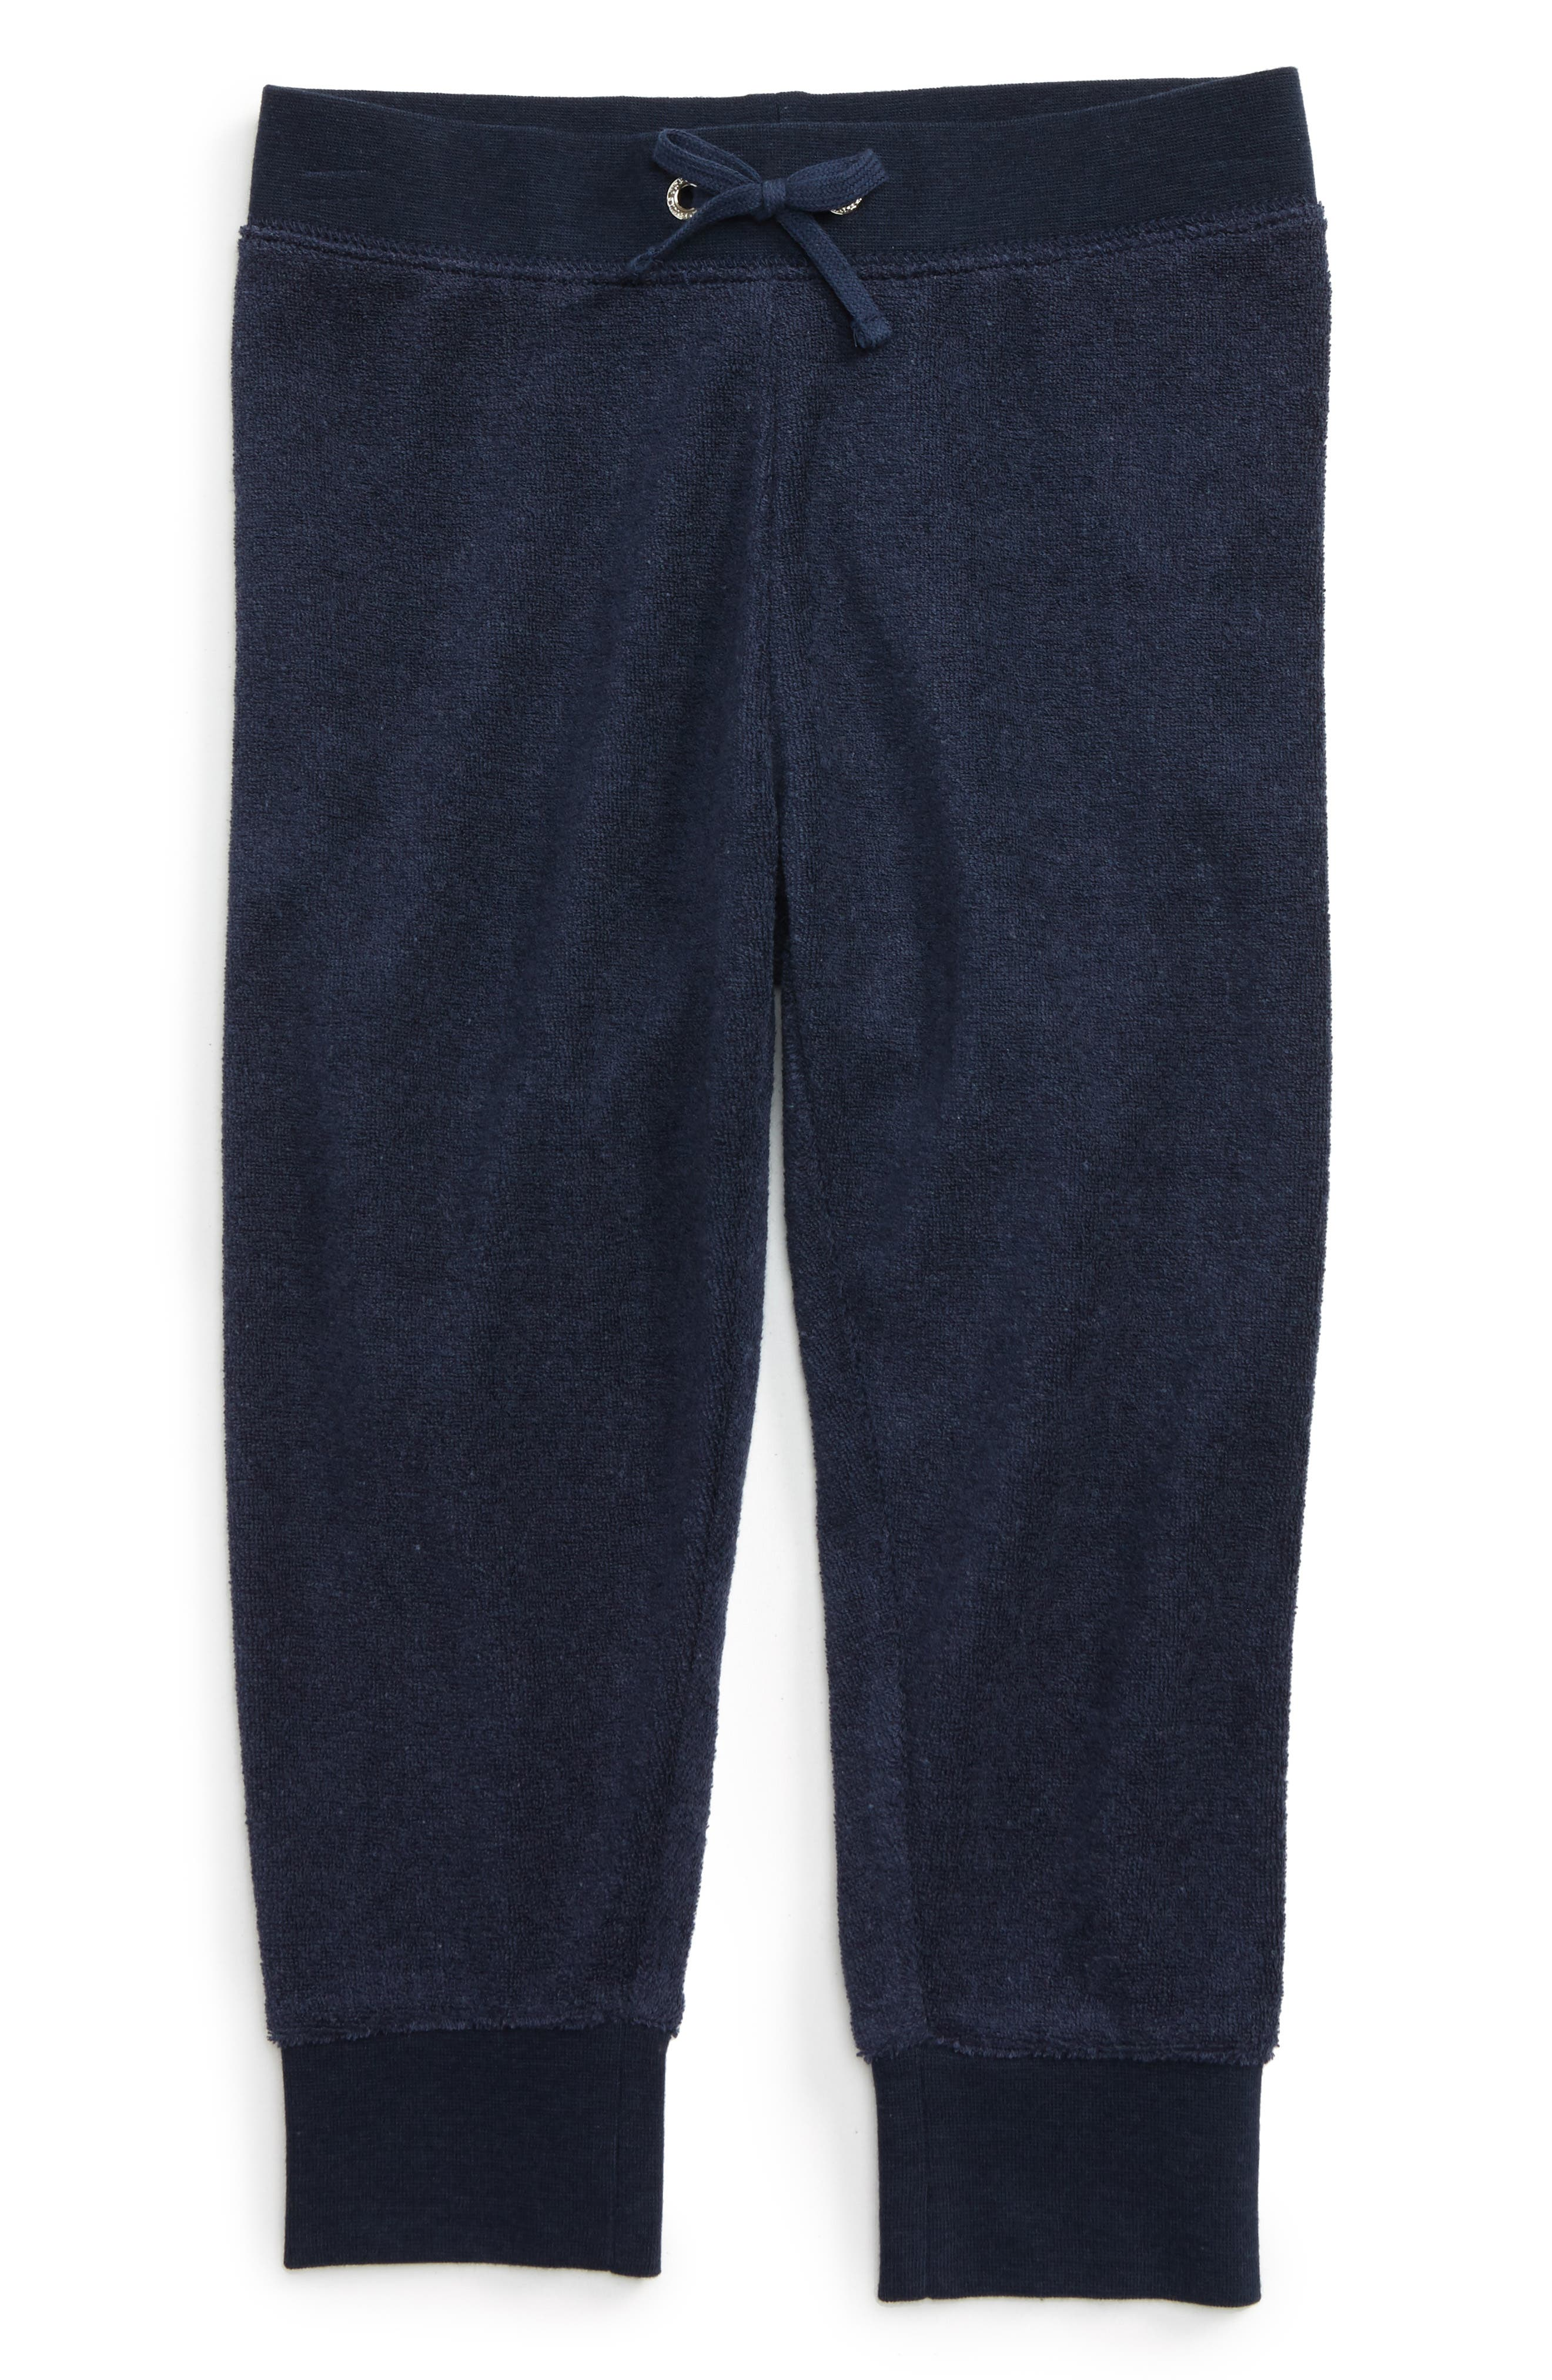 Juicy Couture Zuma Microterry Pants (Toddler Girls & Little Girls)